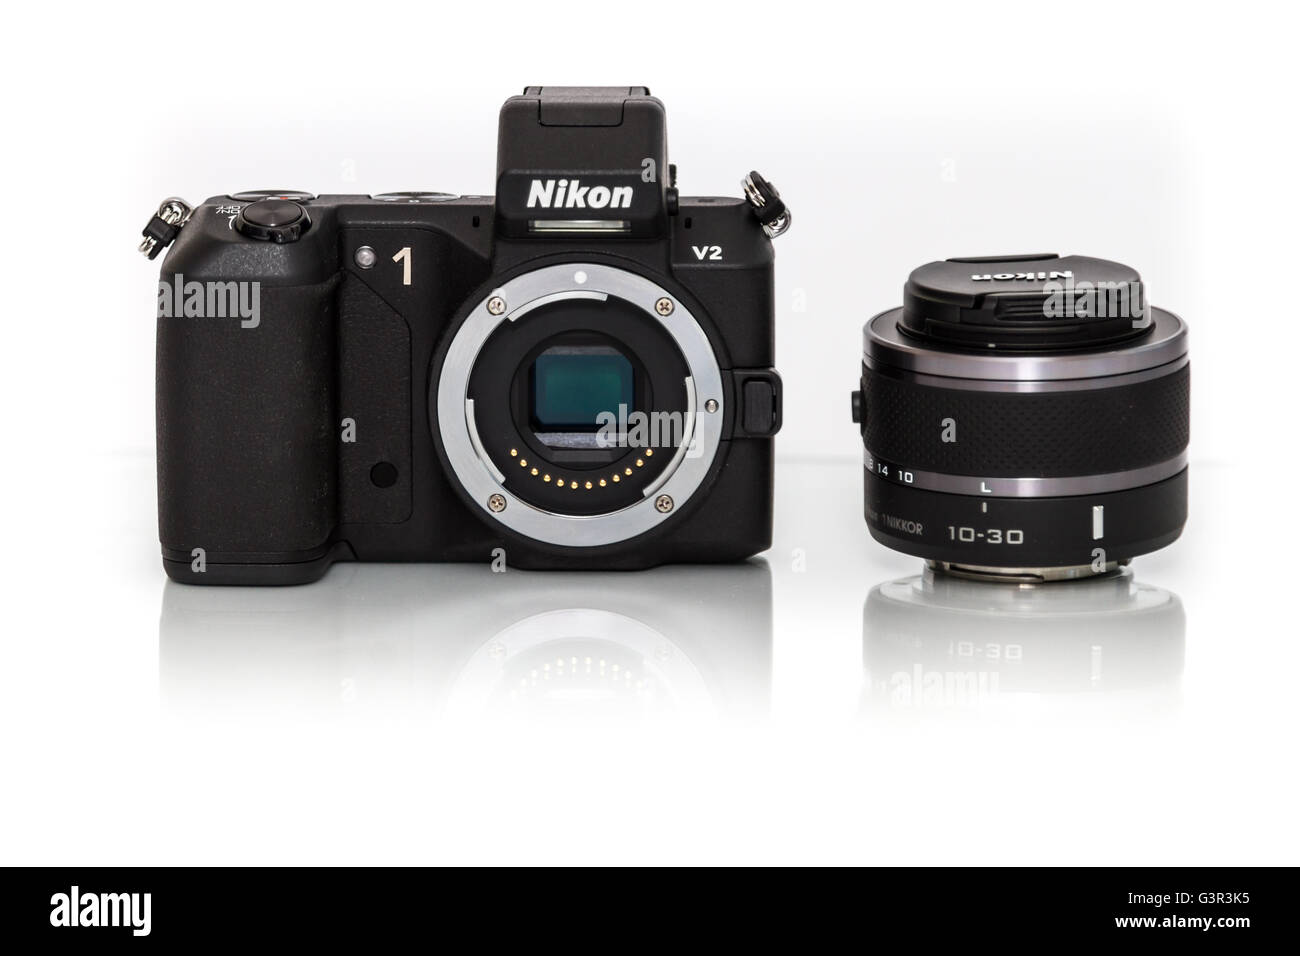 Stock Photo - Nikon 1 V2 compact mirrorless camera - ultra small system - Stock Image